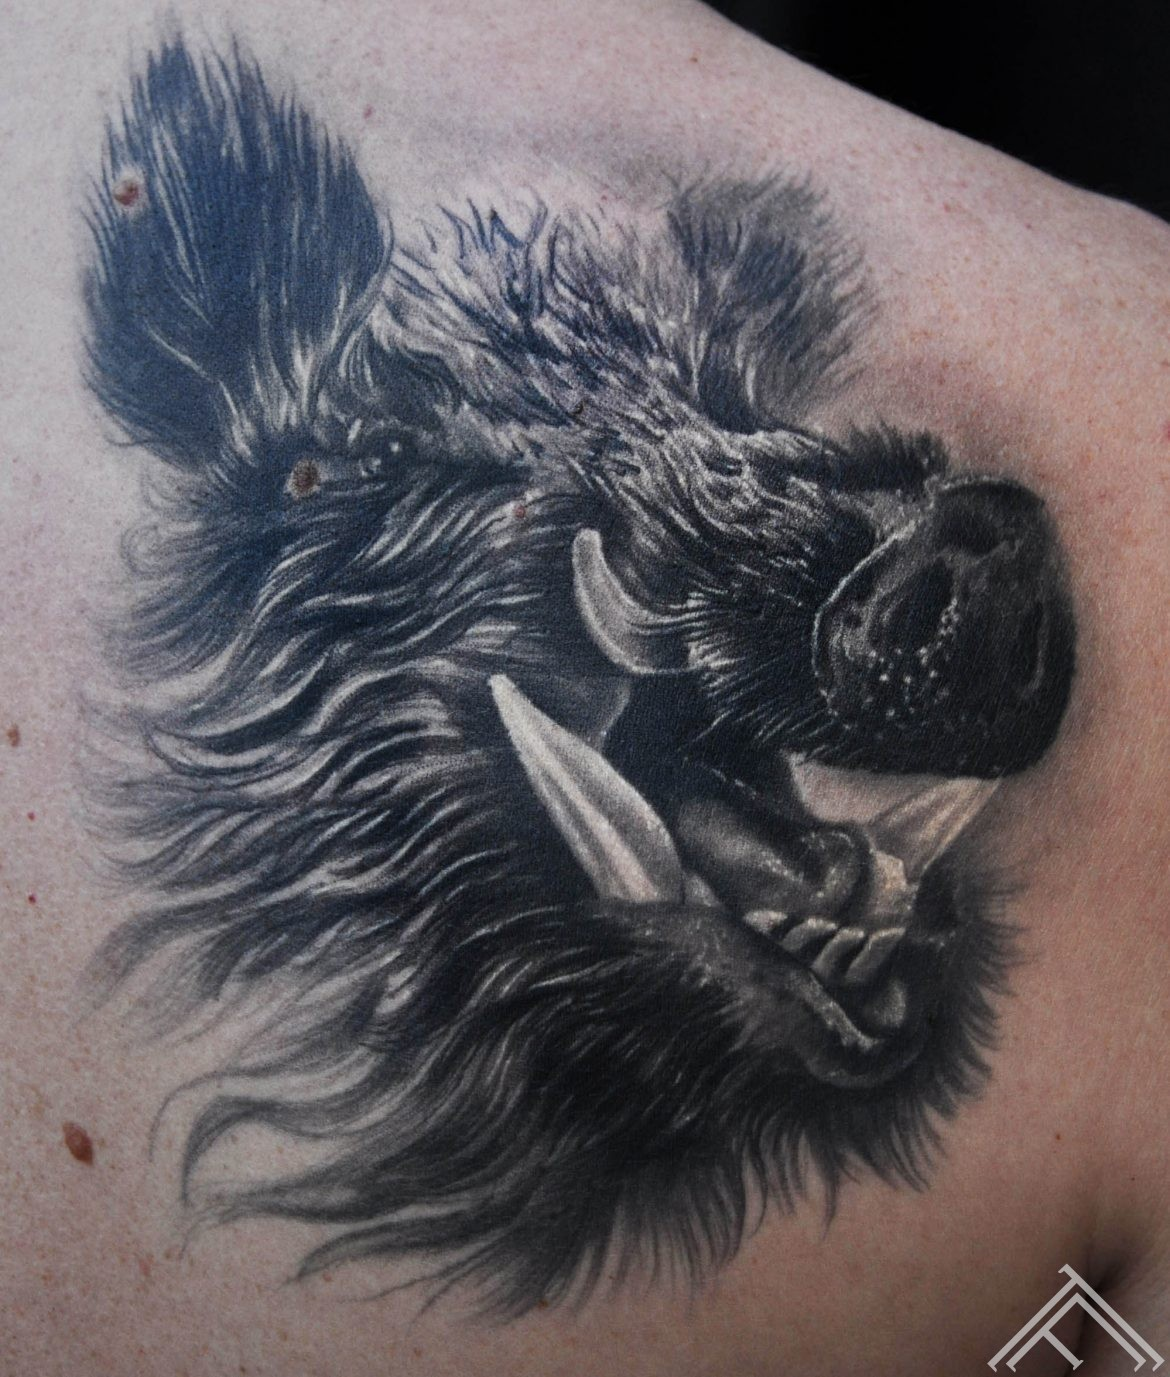 tattoo-pig-boar-tatoofrequency-tattoosaloon-tattoorigastudio